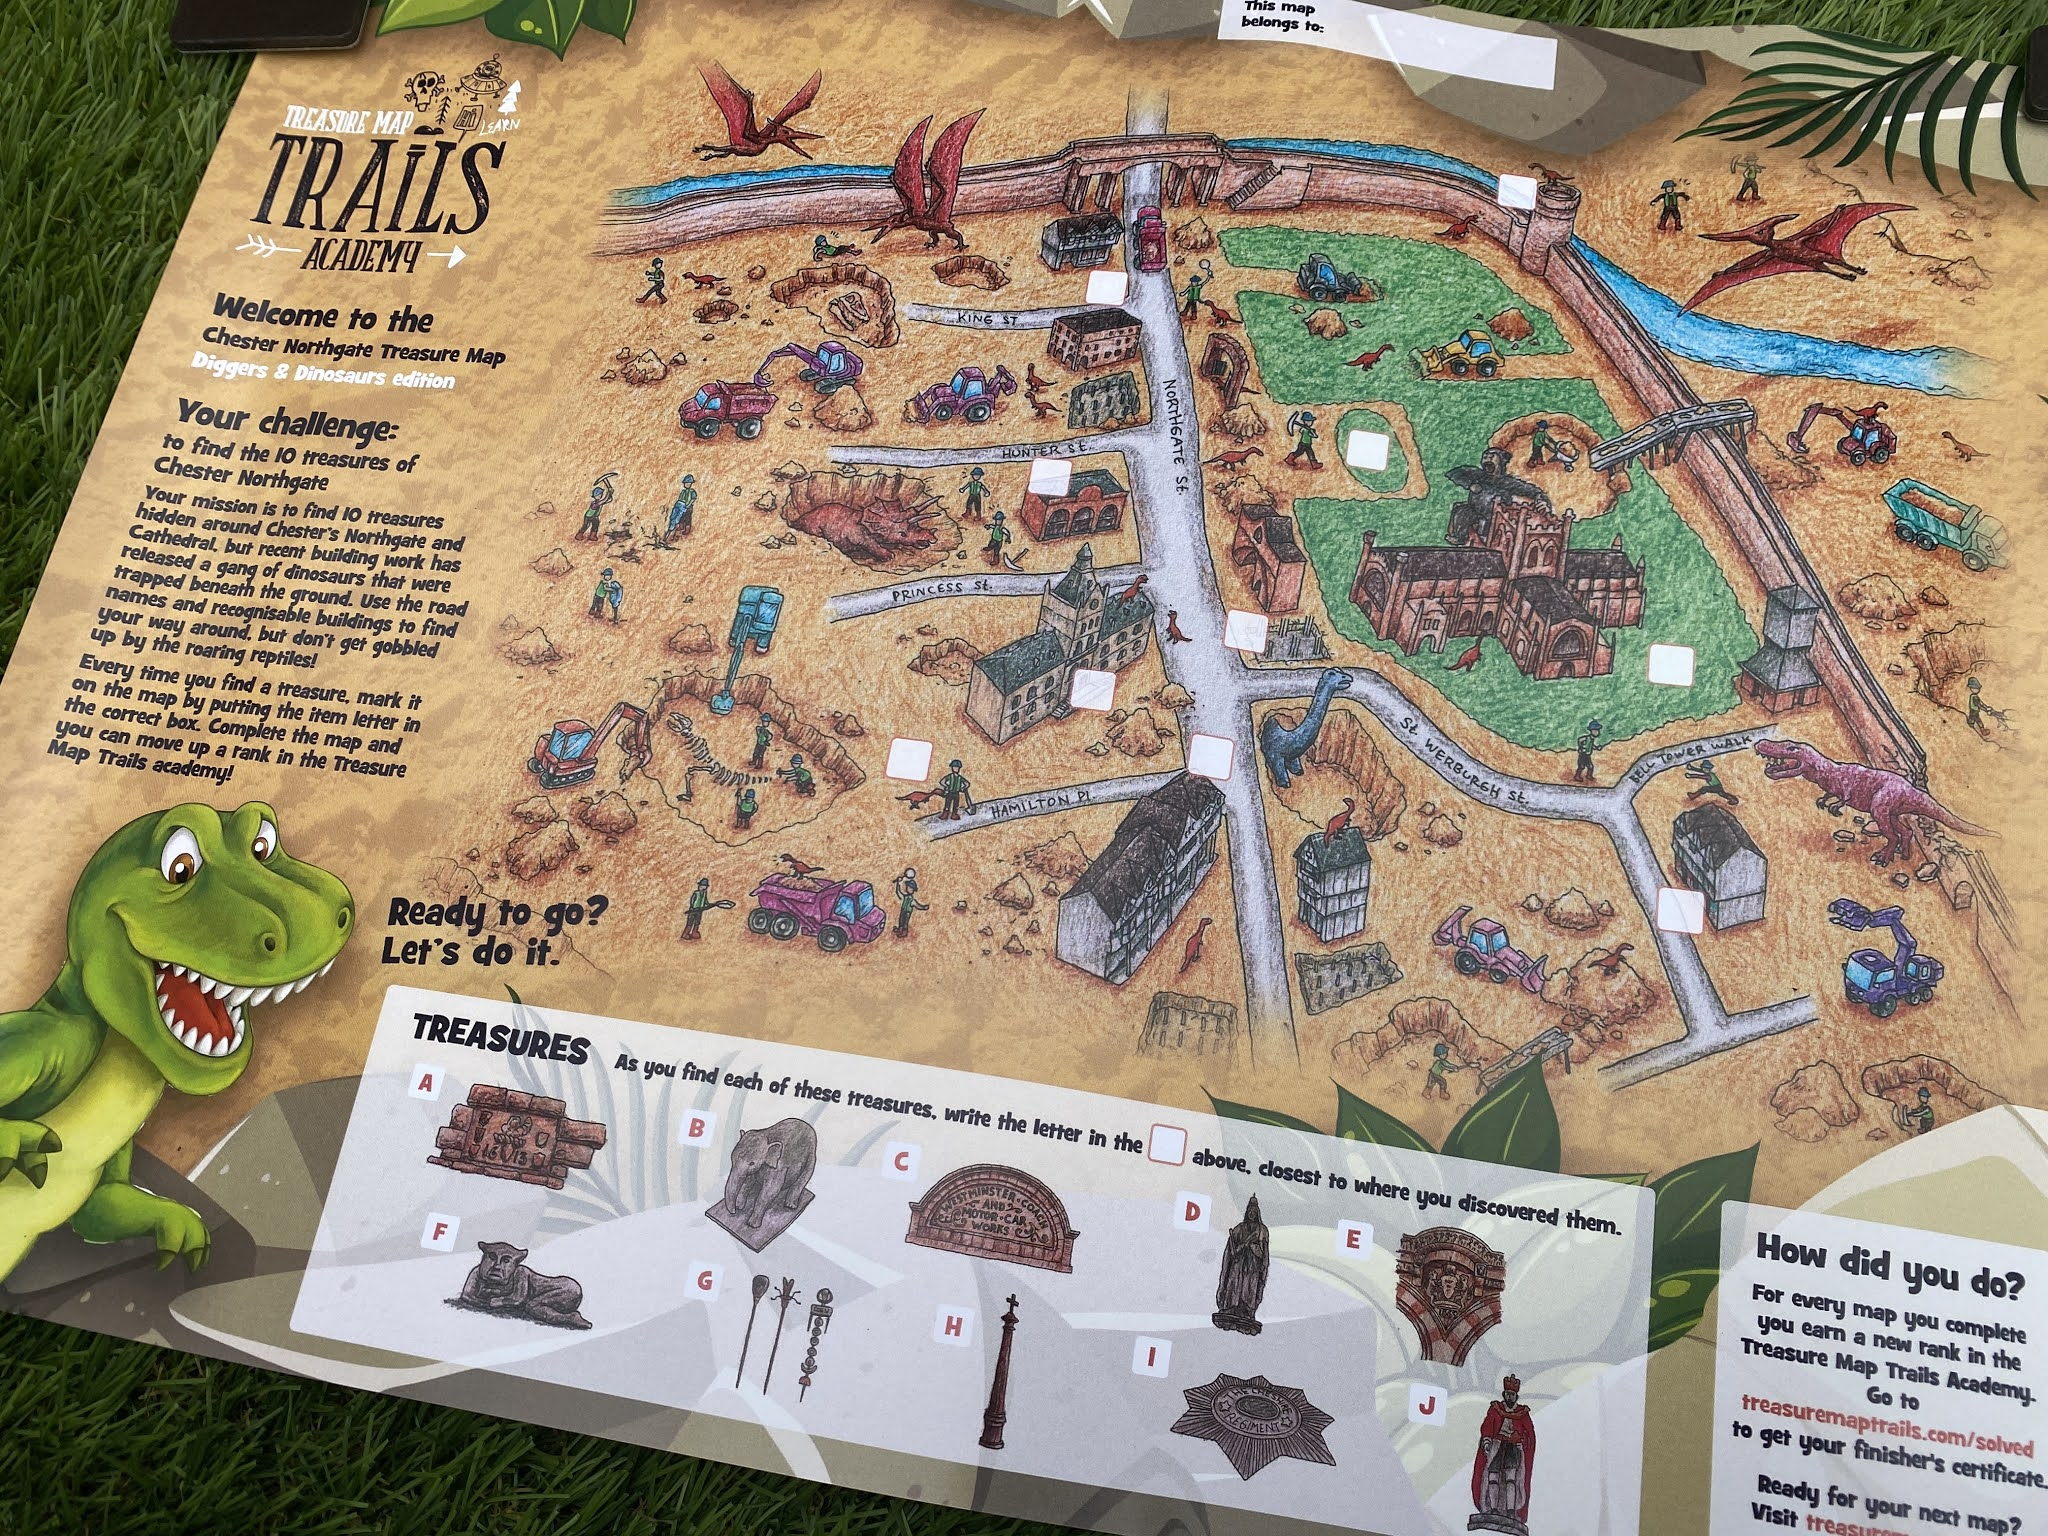 Treasure Map Trails - Dinosaurs and Diggers